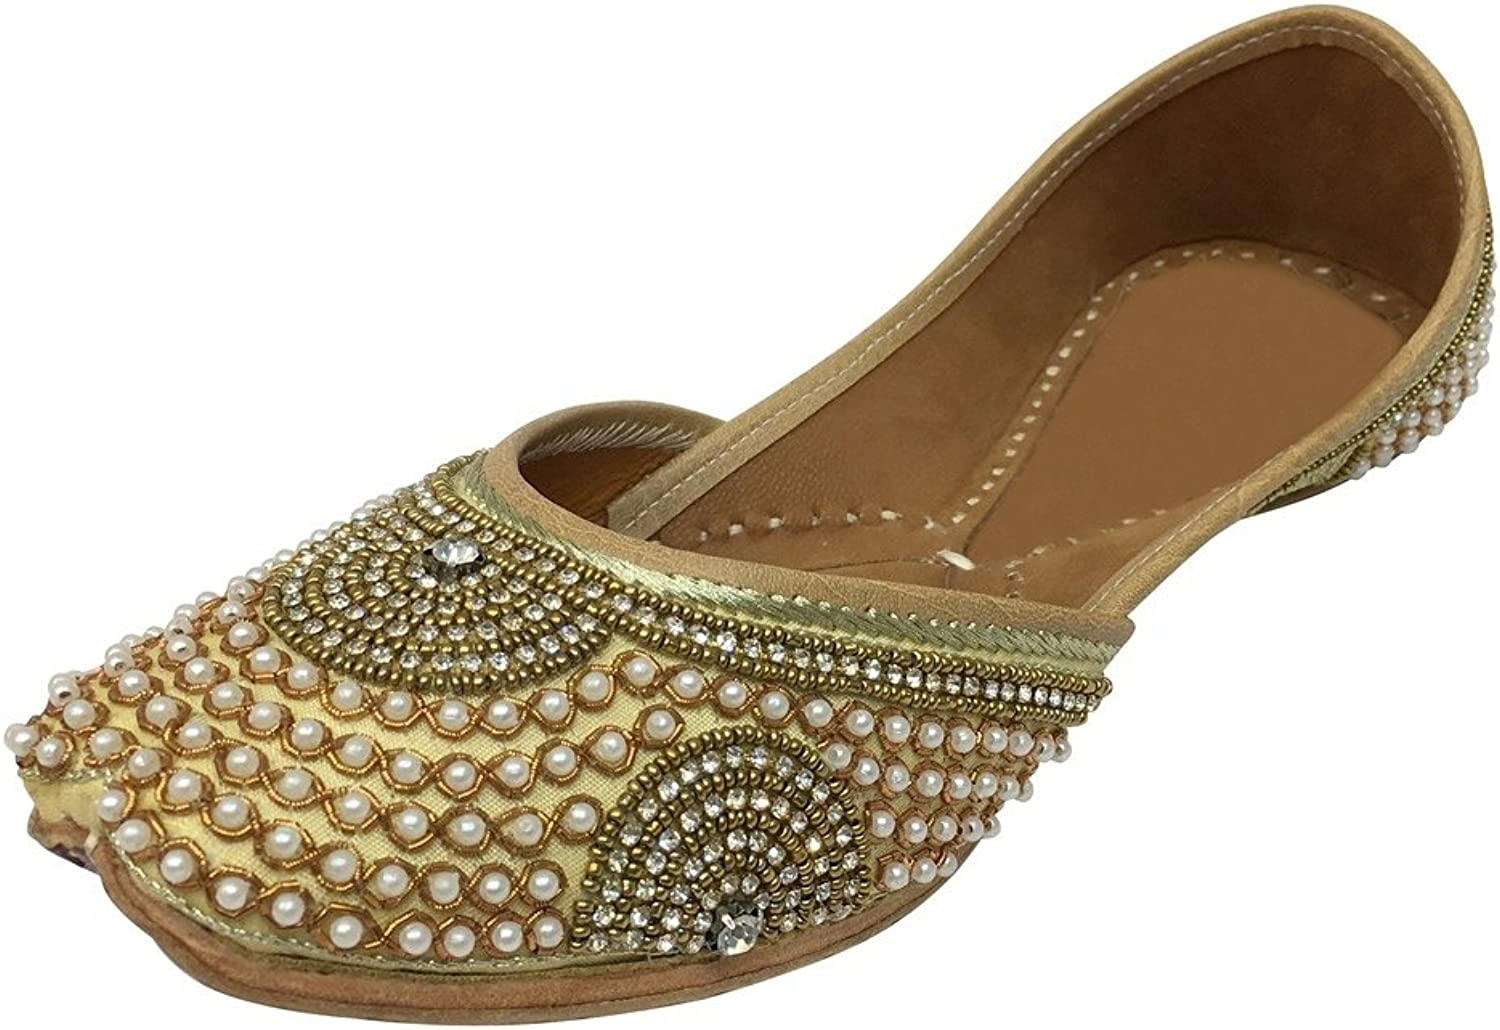 Step n Style Indian Women shoes Leather Flip-Flops Juti Traditional Handmade Mojari DD999 Copper